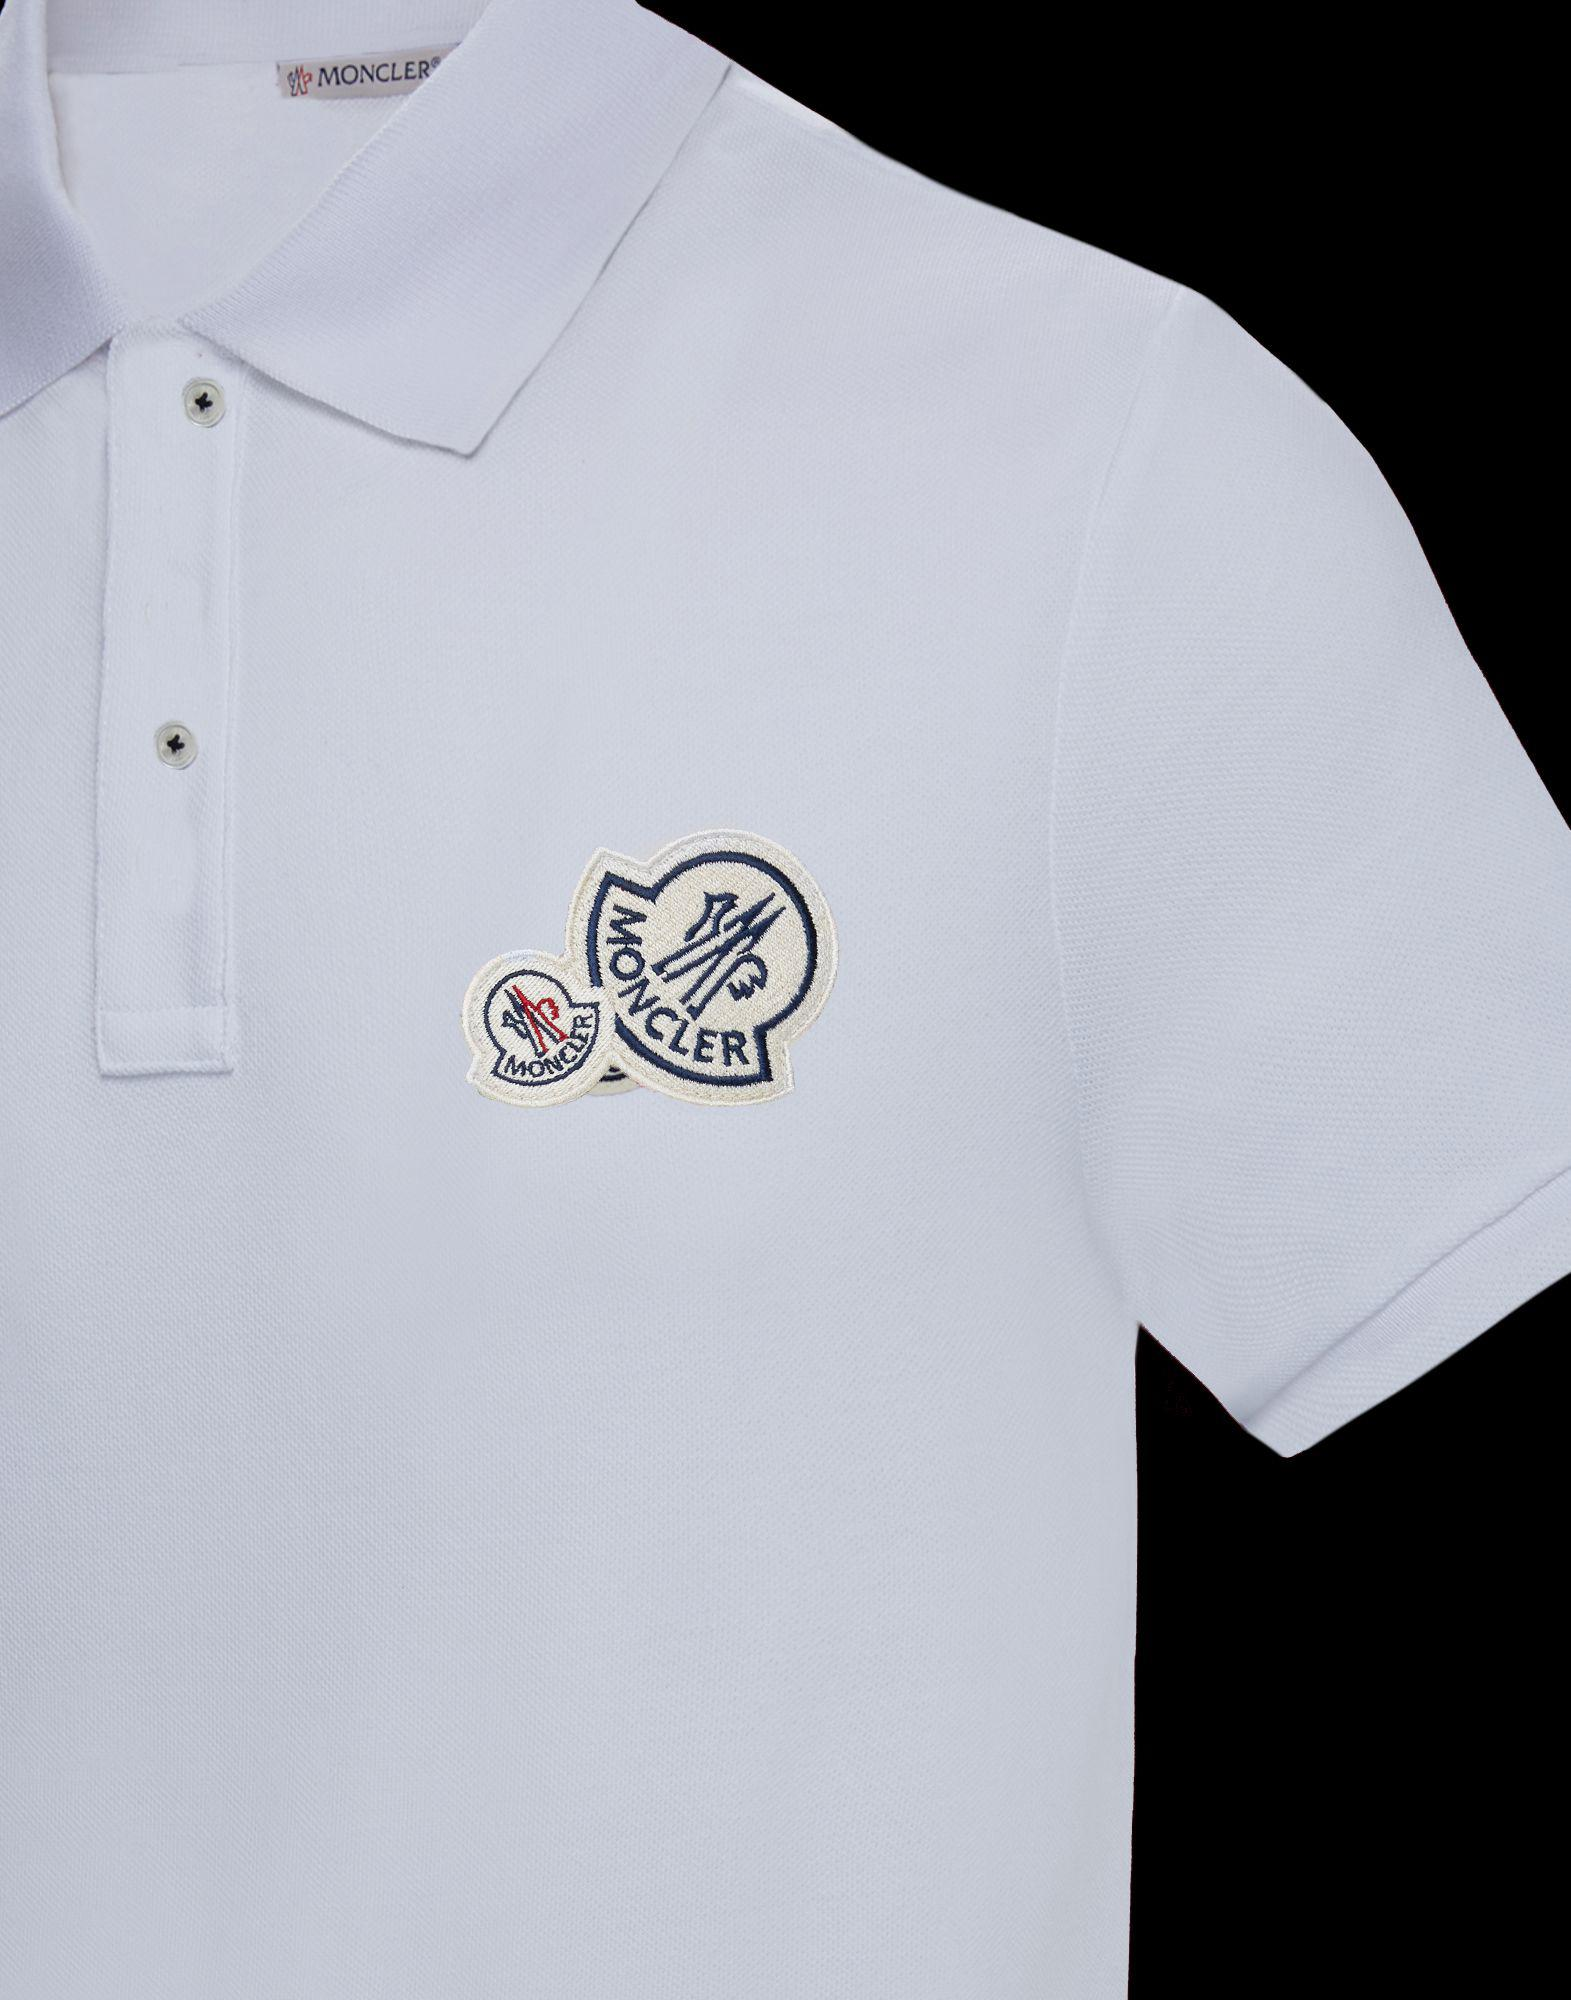 5529d6a25d1b Moncler Polo Shirt in White for Men - Lyst